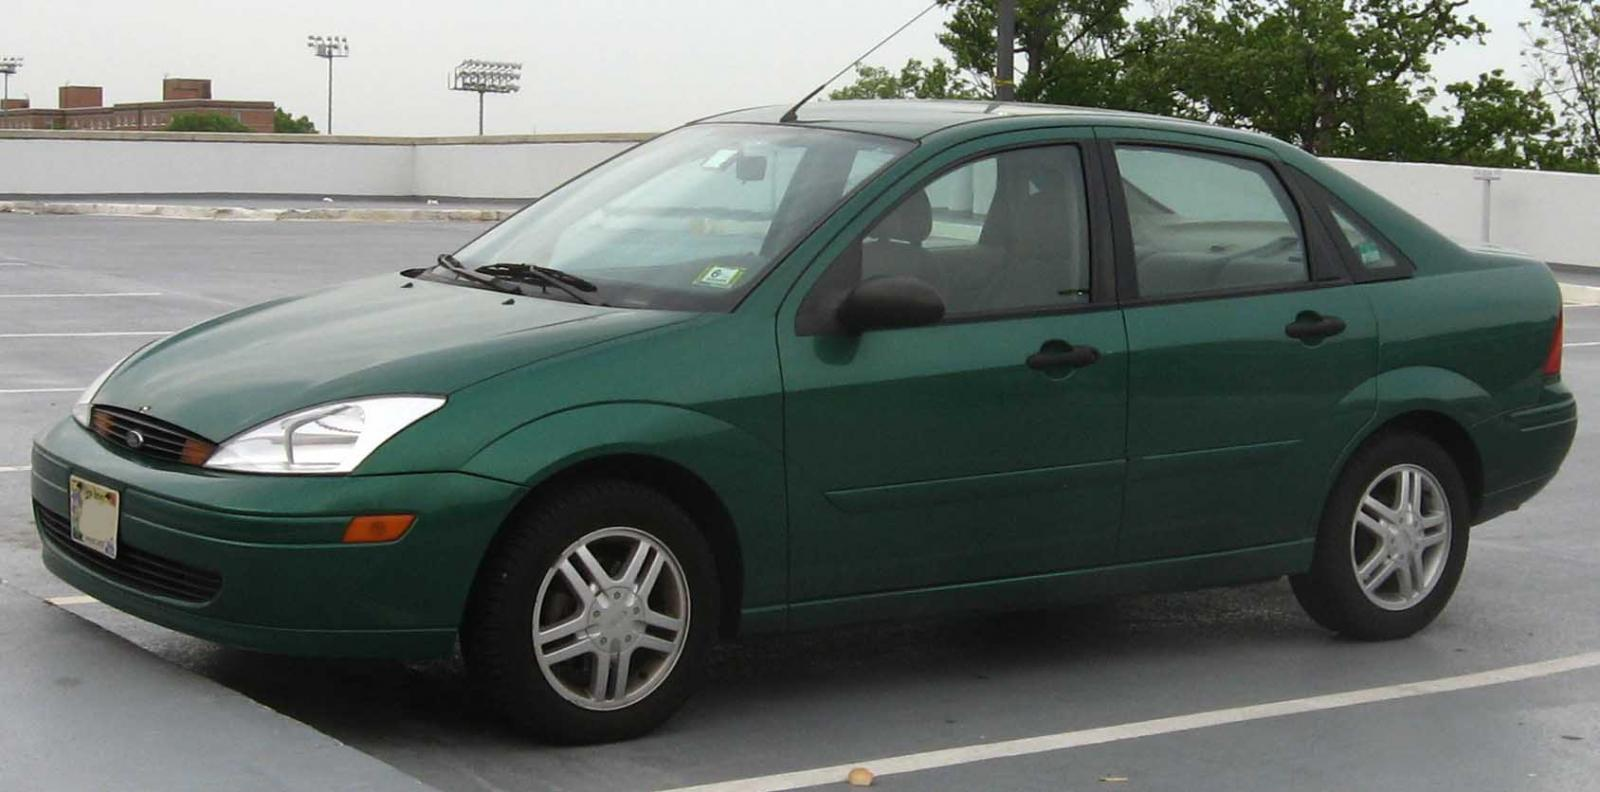 800 1024 1280 1600 origin 2000 ford focus